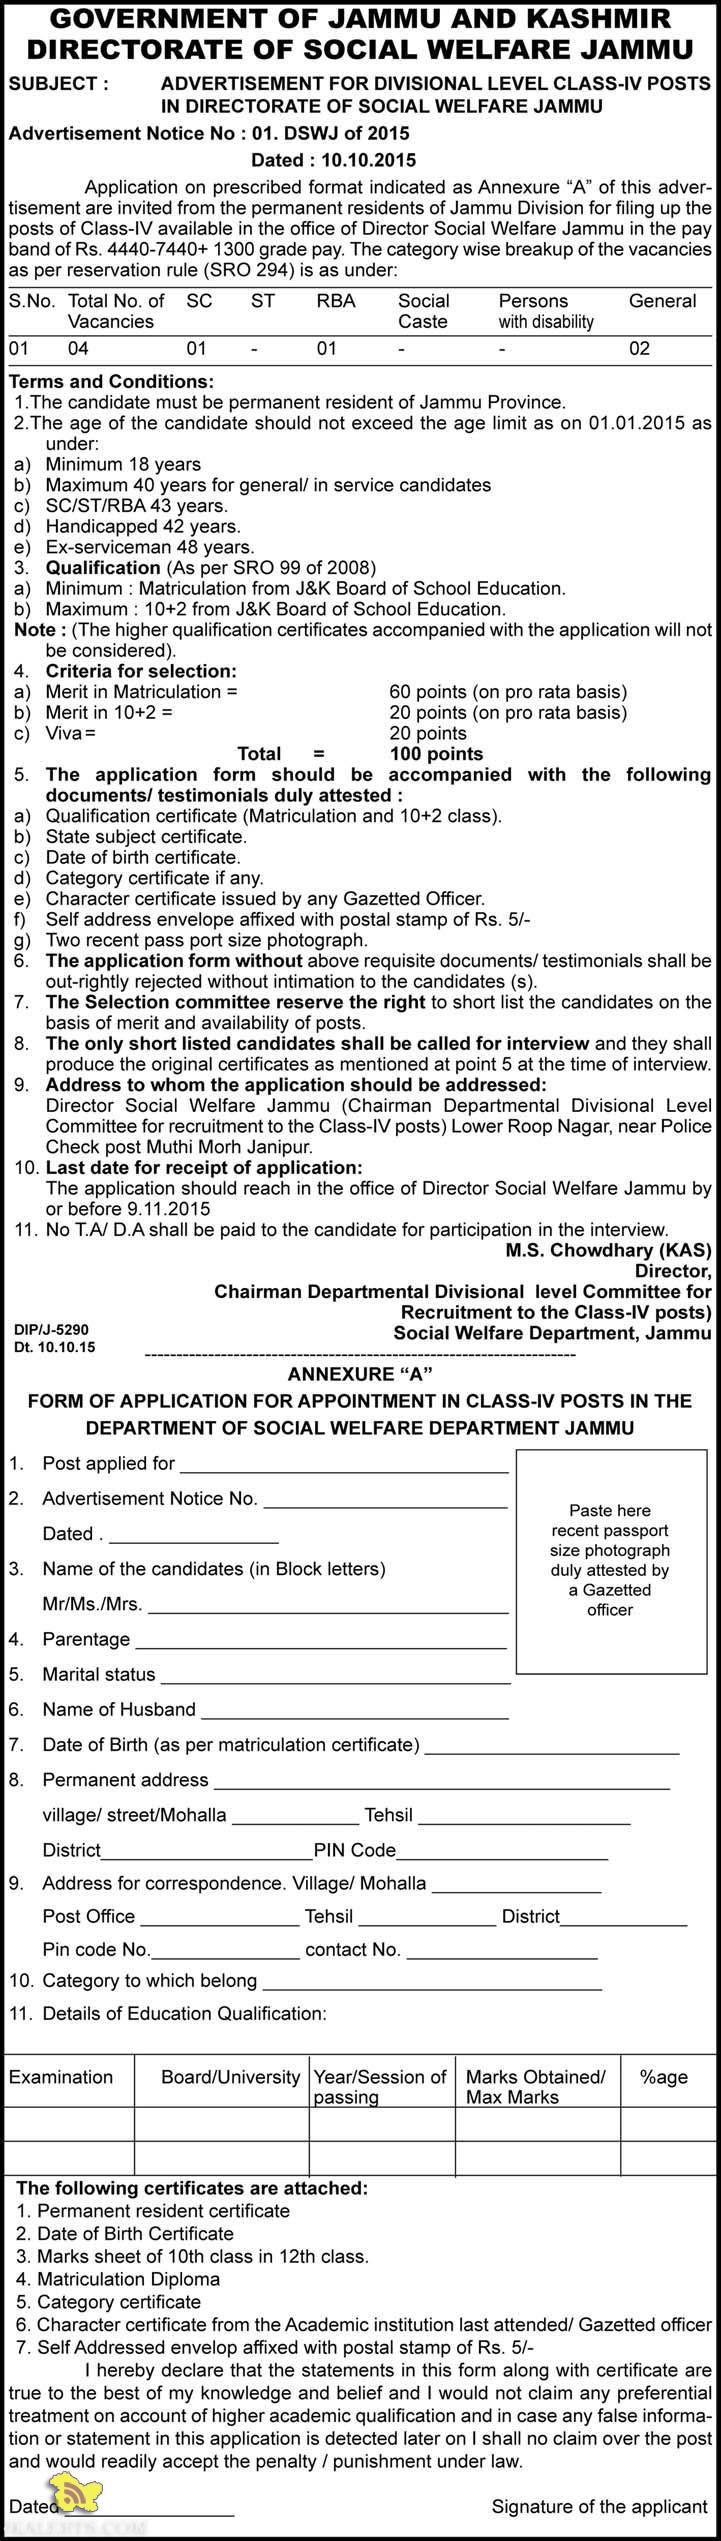 DIVISIONAL LEVEL CLASS-IV JOBS IN DIRECTORATE OF SOCIAL WELFARE